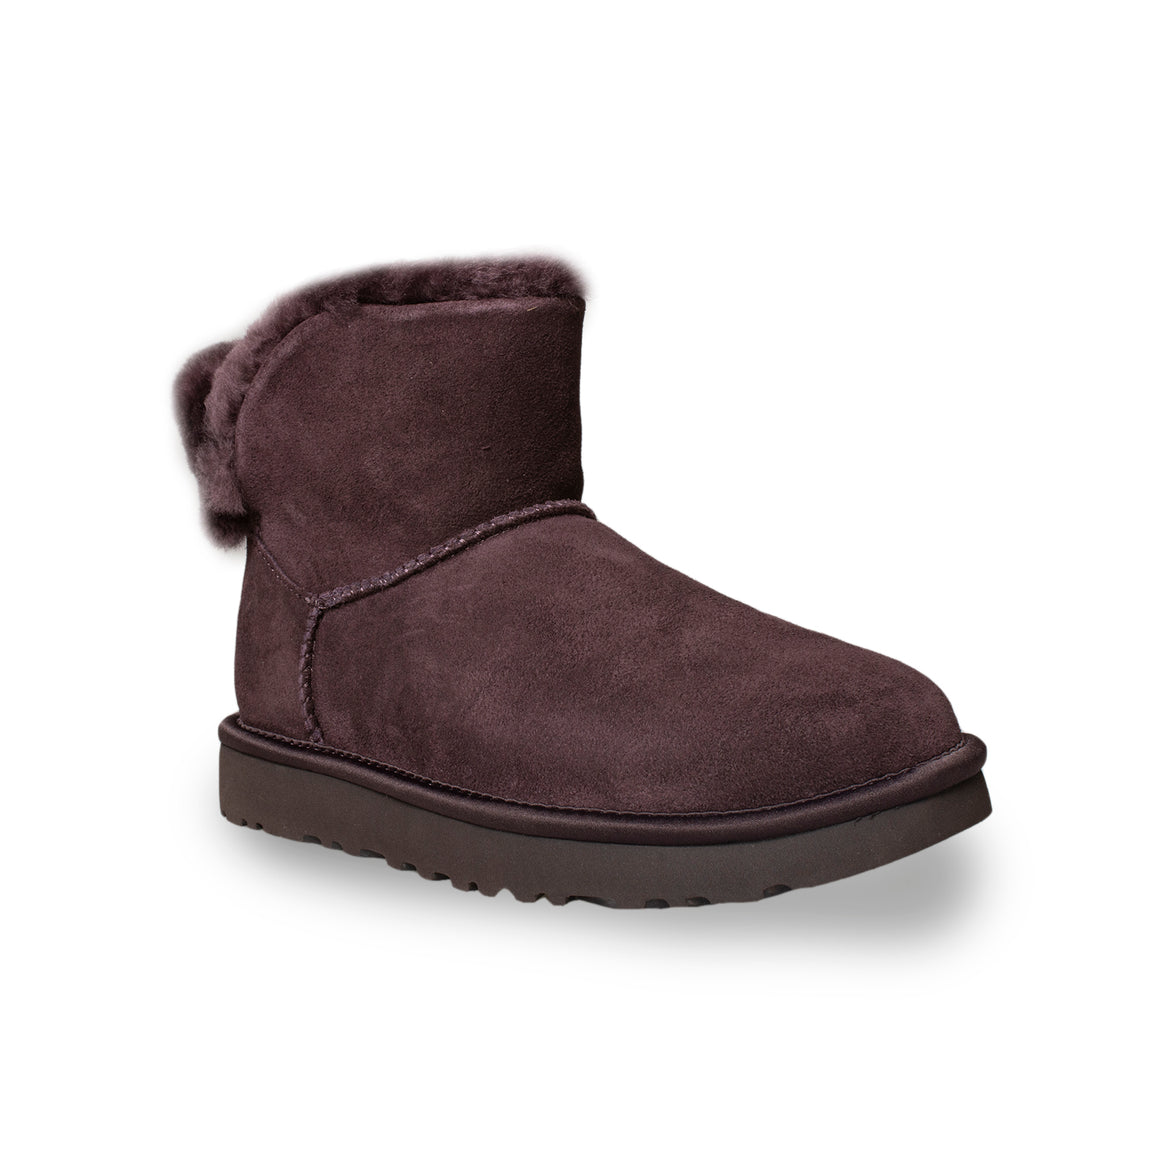 UGG Classic Bling Mini Lodge Boots - Women's